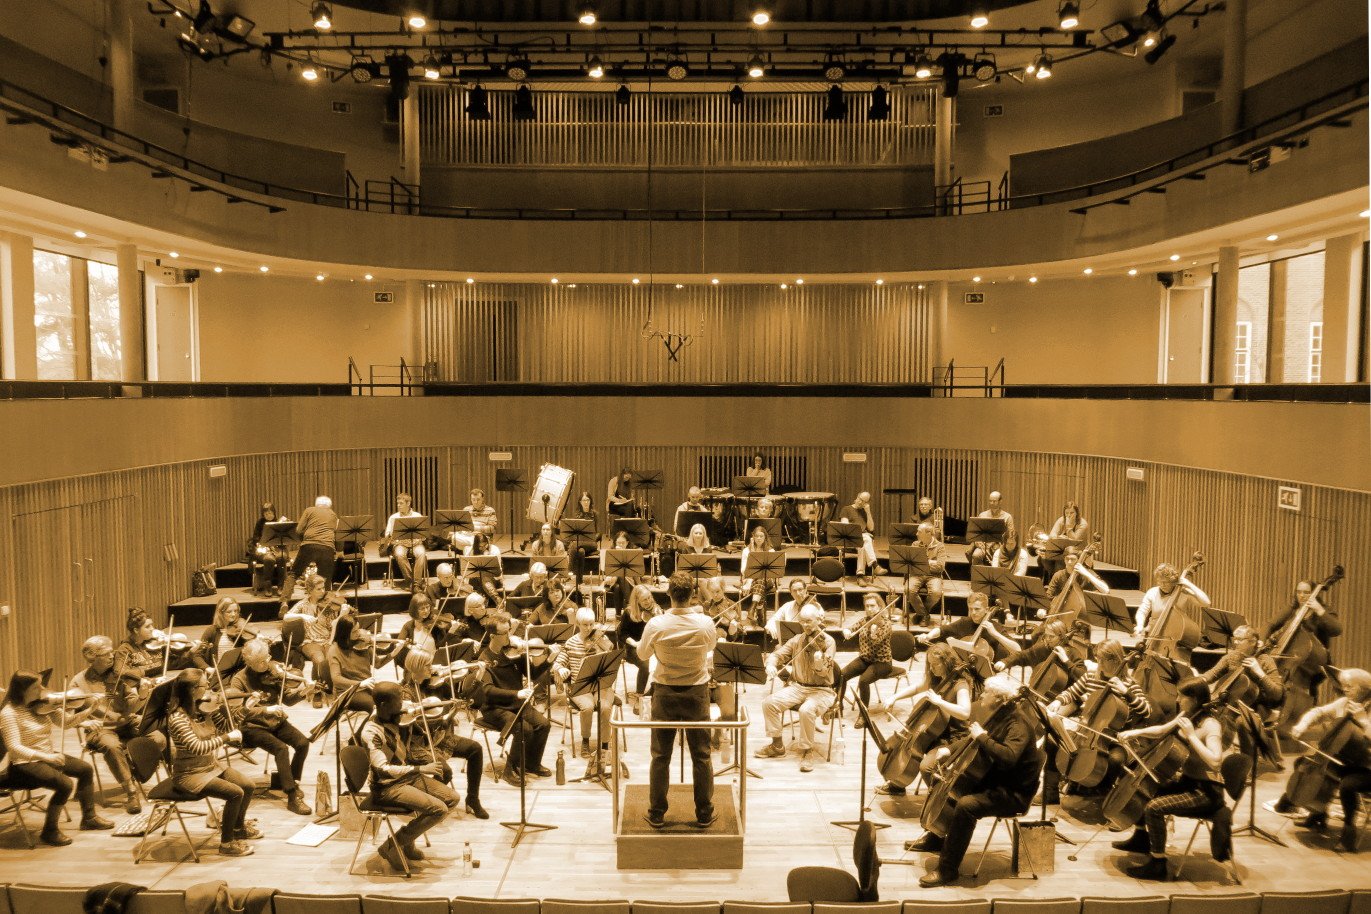 Image of the whole orchestra